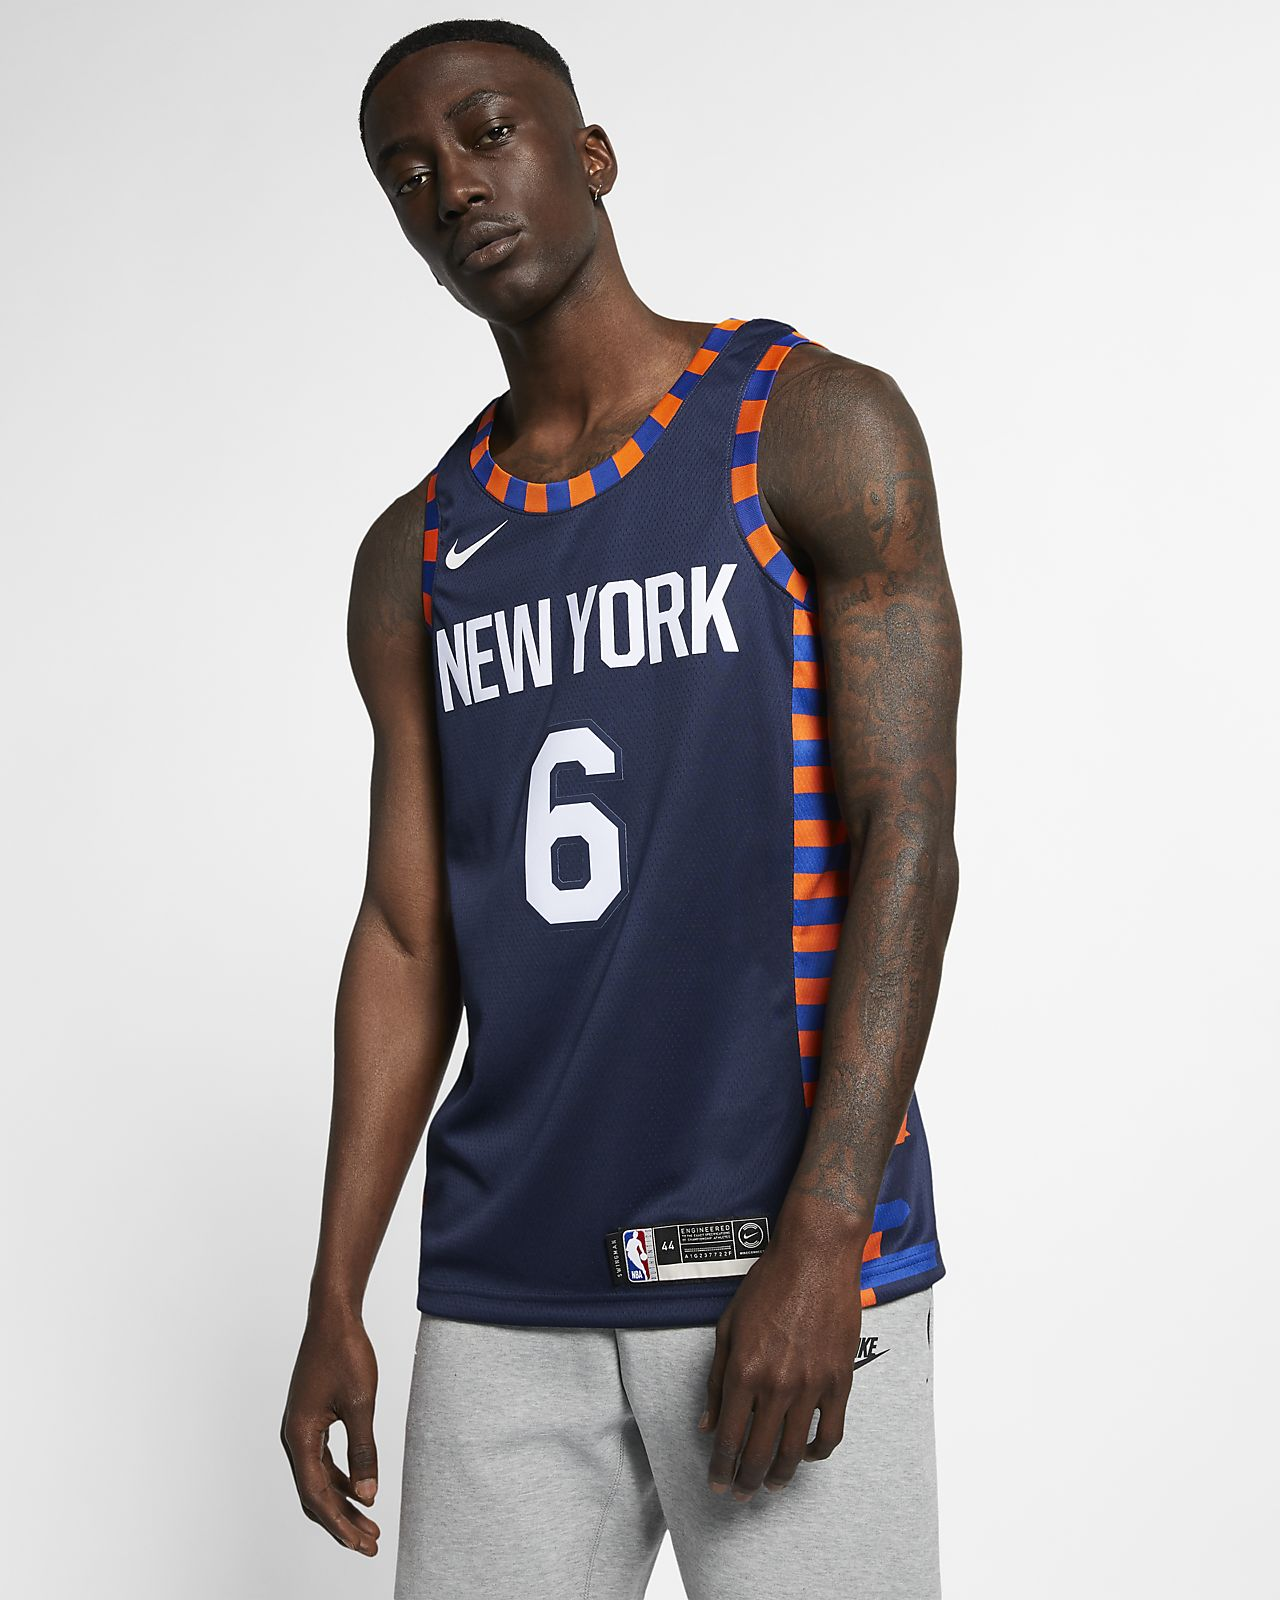 Men s Nike NBA Connected Jersey. Kristaps Porziņģis City Edition Swingman (New  York Knicks) 585a6cb10